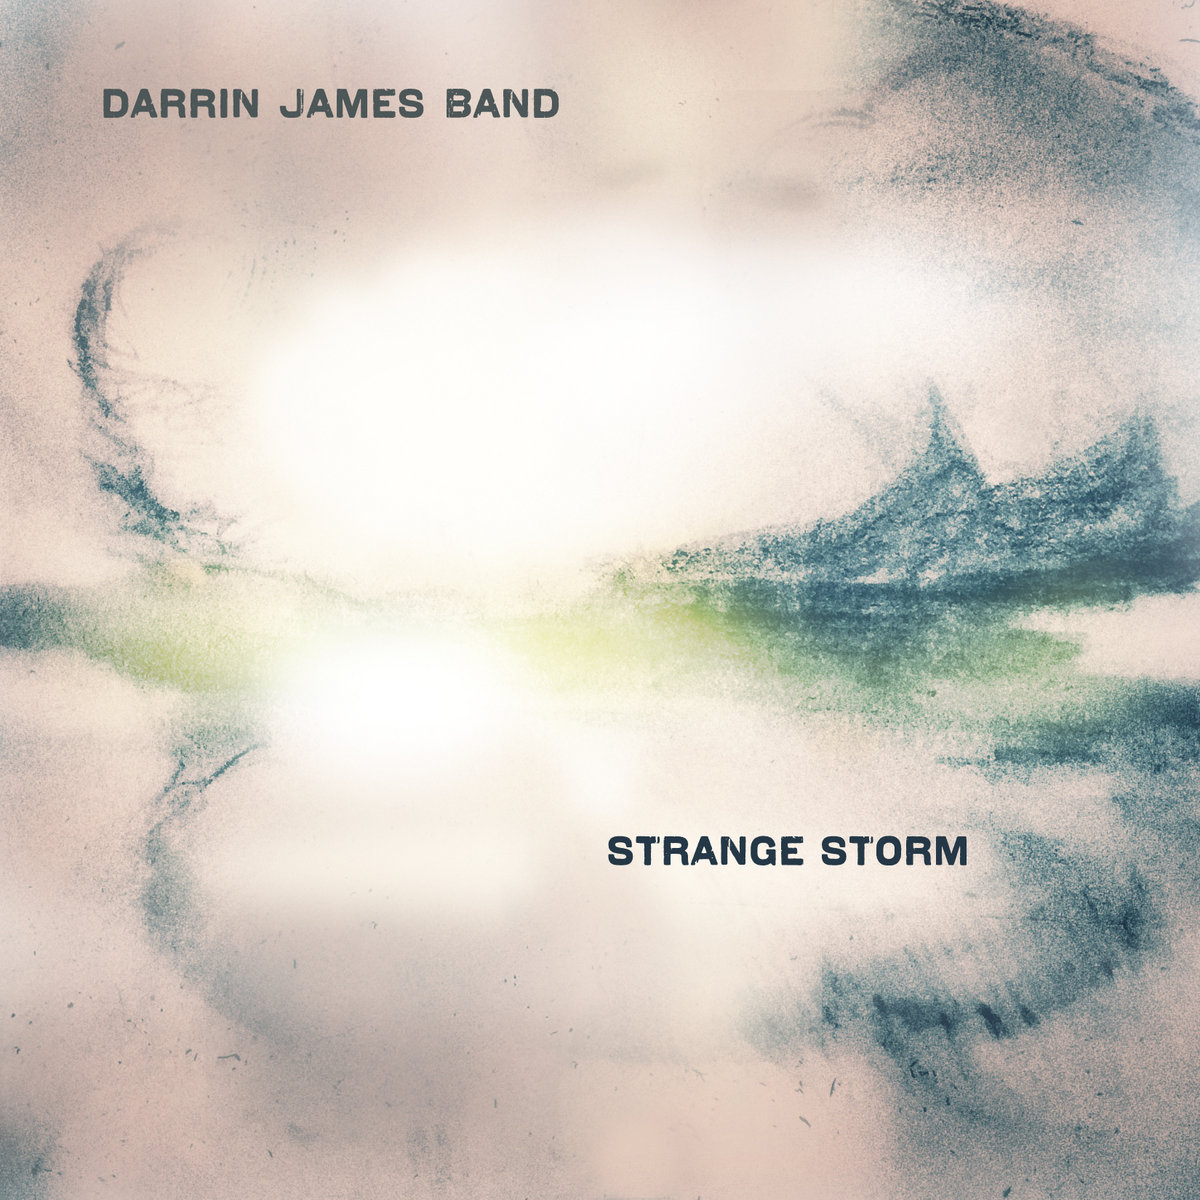 Image result for strange storm darrin james band